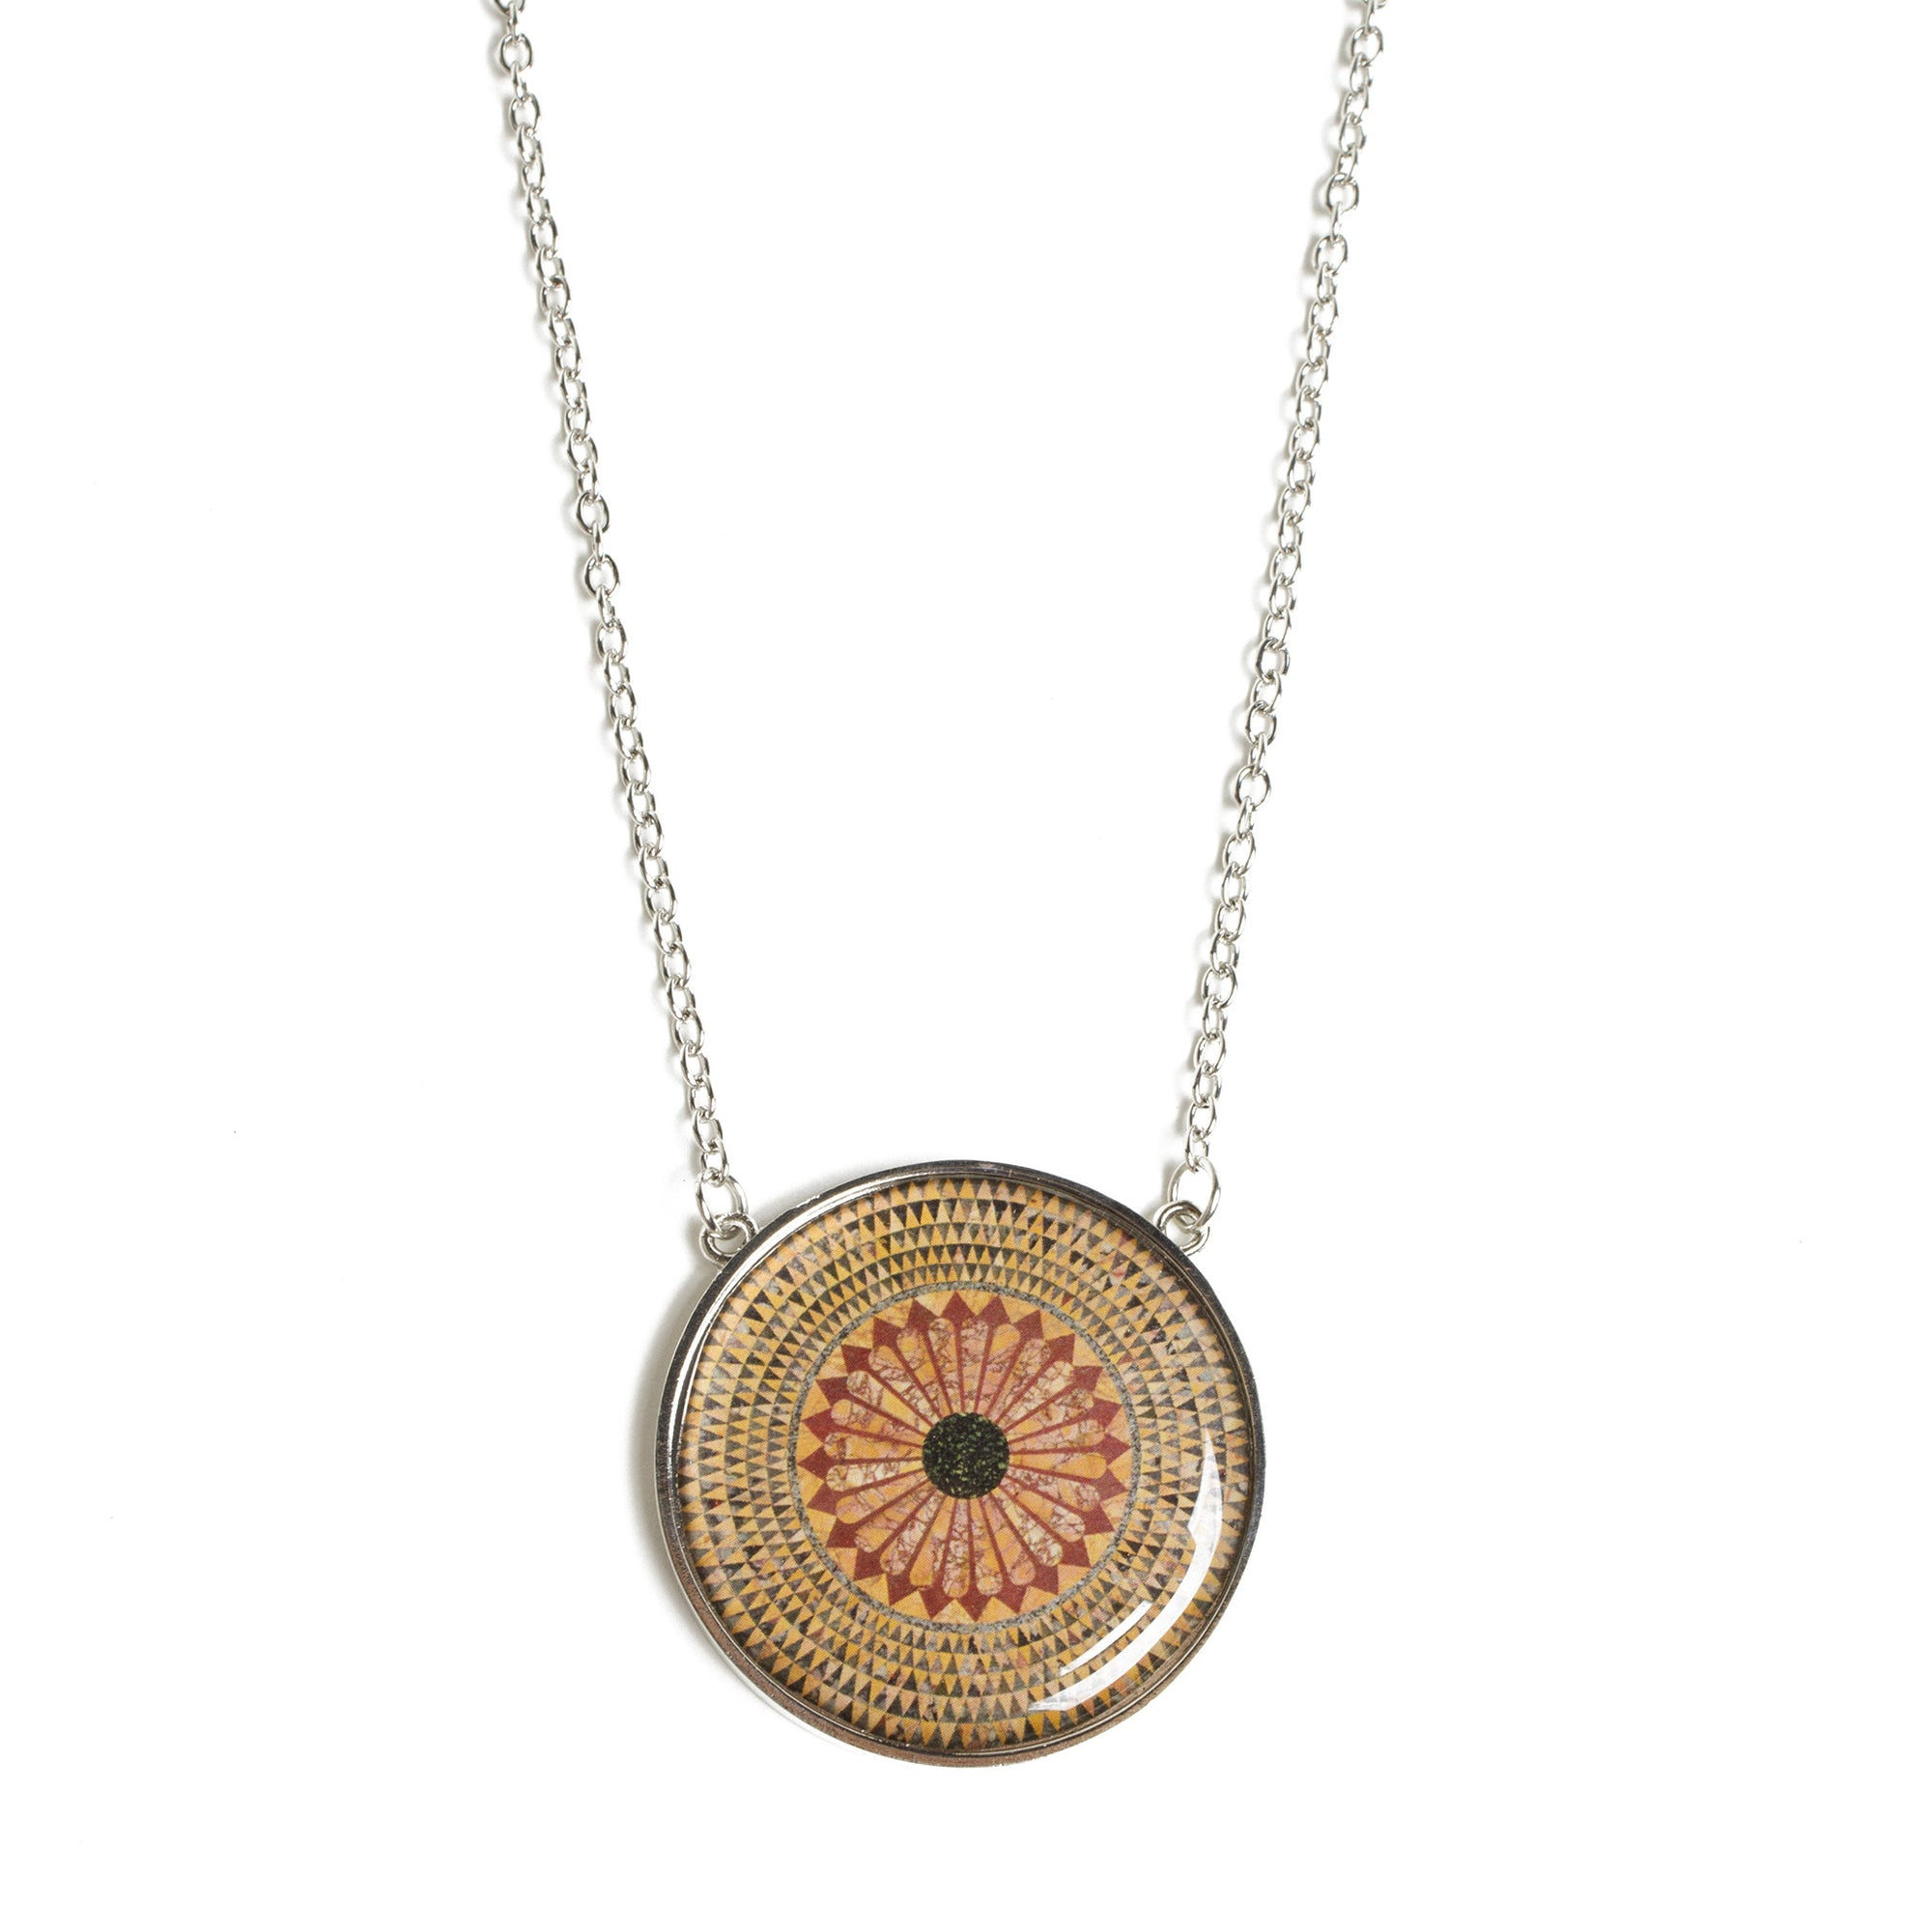 Hercules Mosaic Floor Pendant Necklace